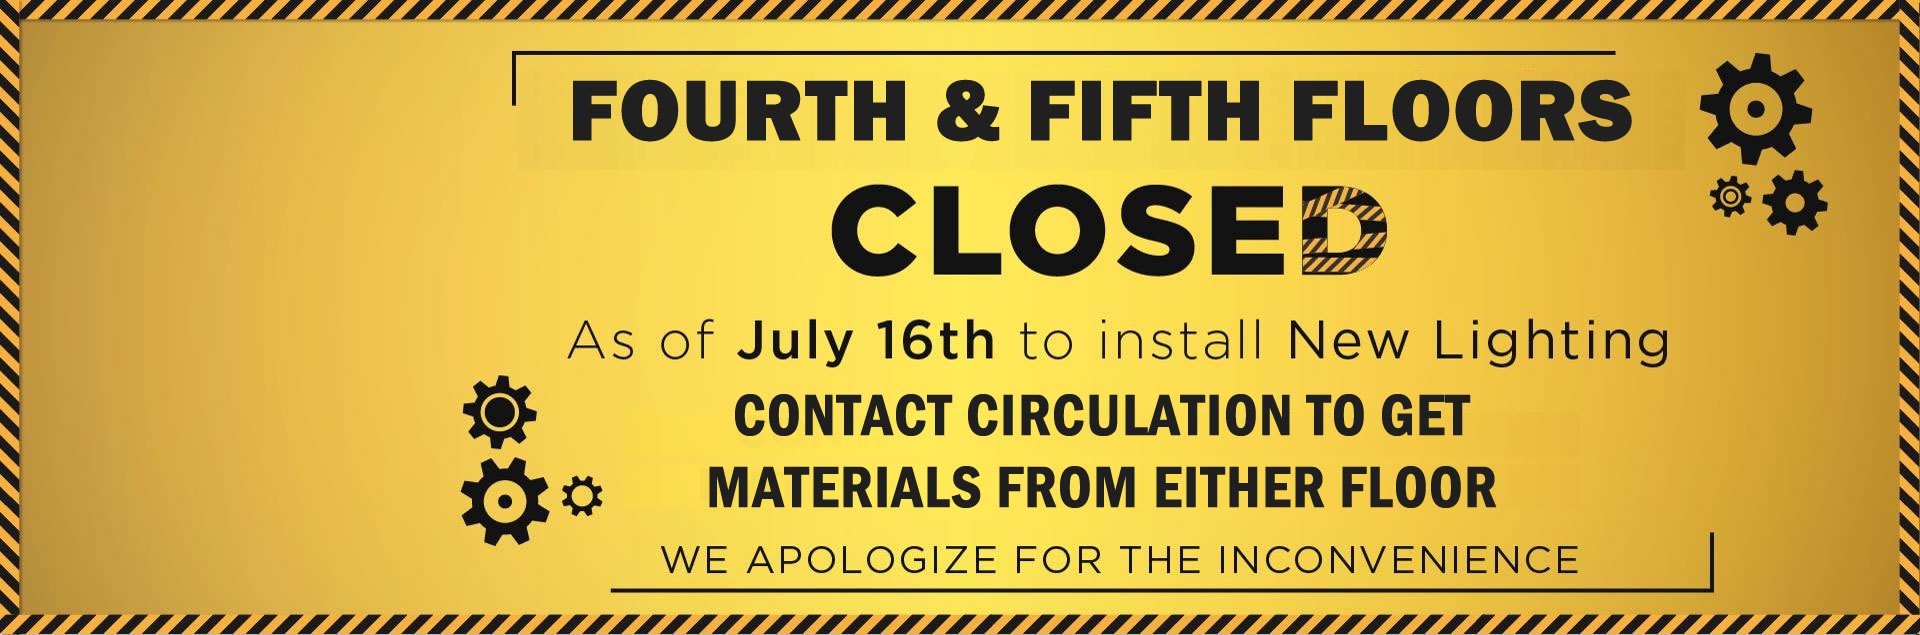 fourth floor closed july 16 for three weeks